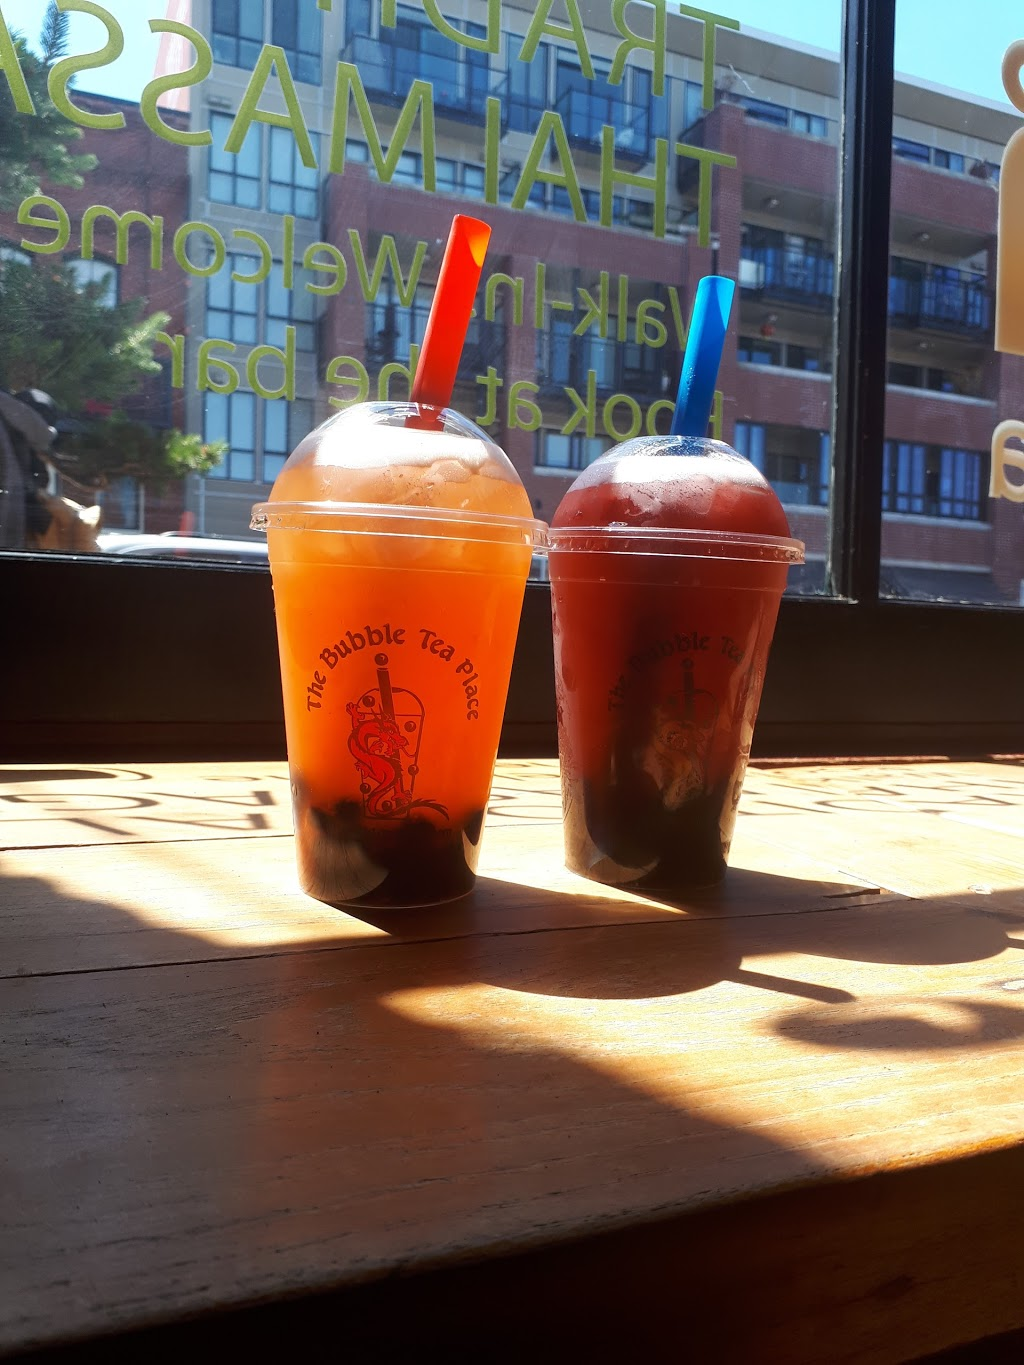 The Bubble Tea Place | cafe | 532 Fisgard St, Victoria, BC V8W 1R5, Canada | 2503918960 OR +1 250-391-8960